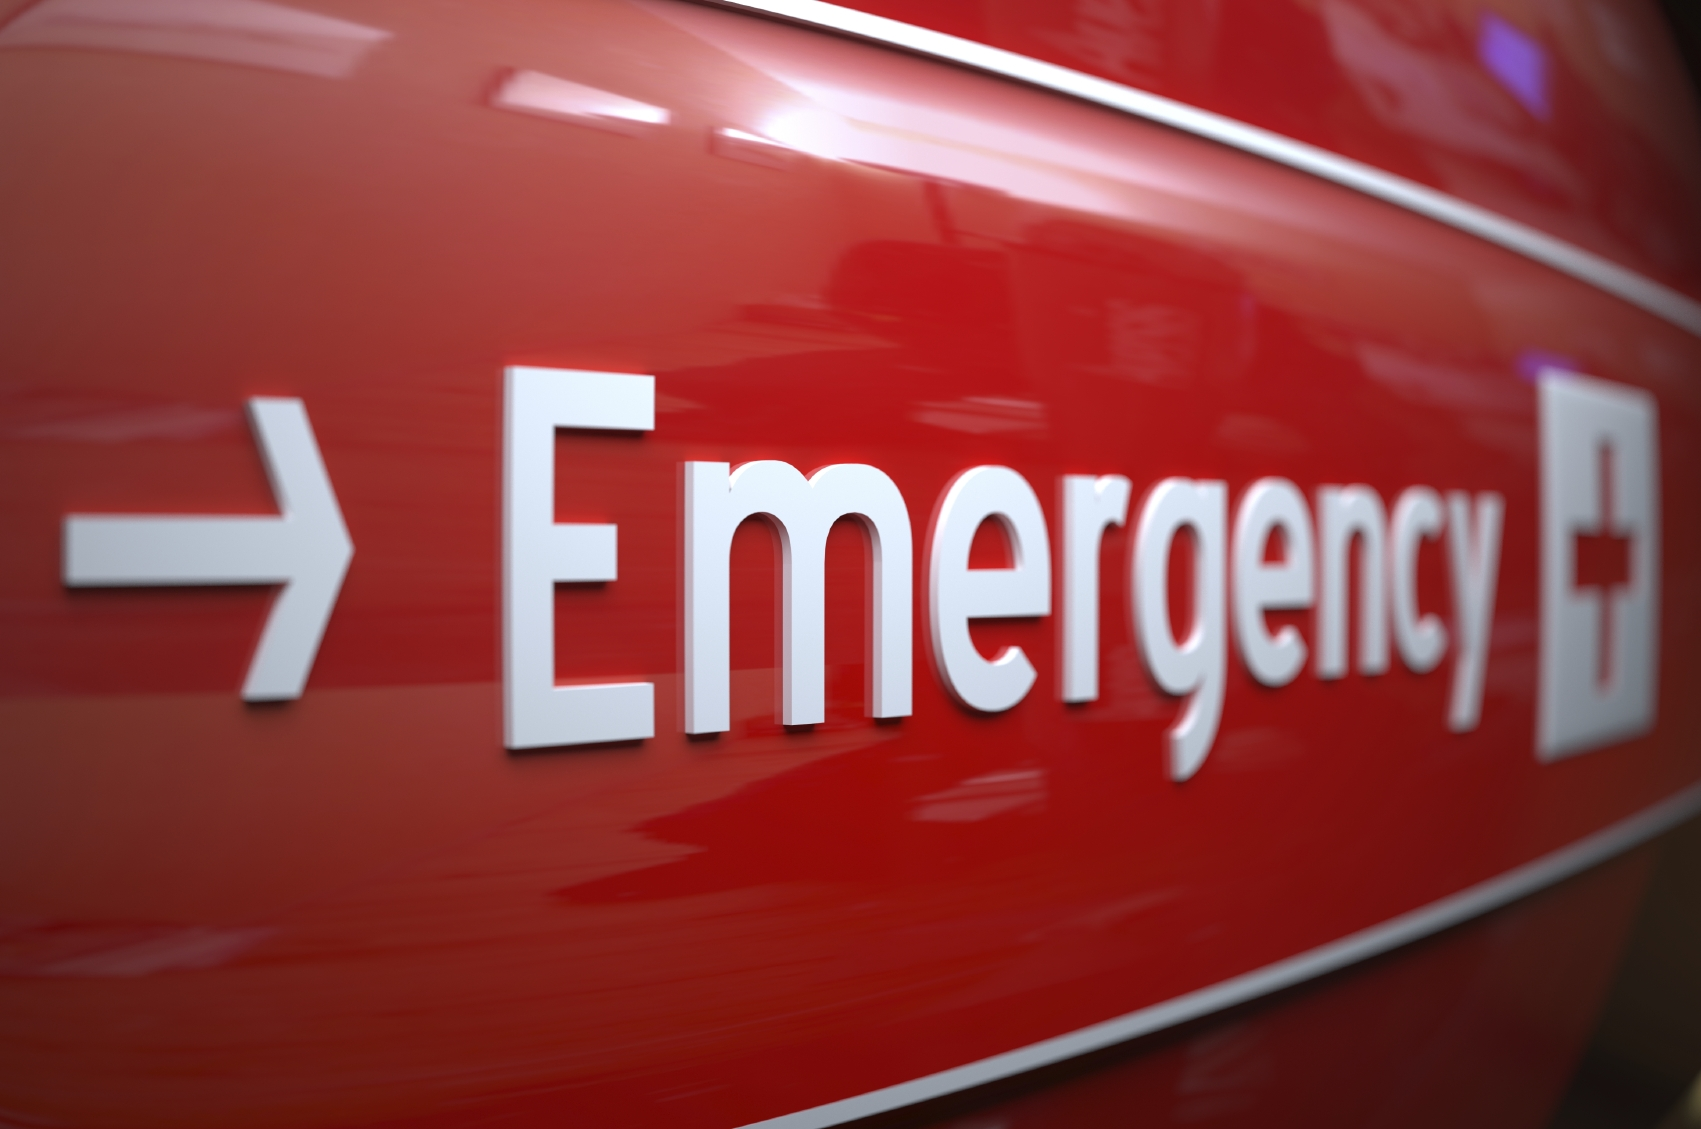 People care more about emergency room wait times than research right? Wrong. New research Australia poll